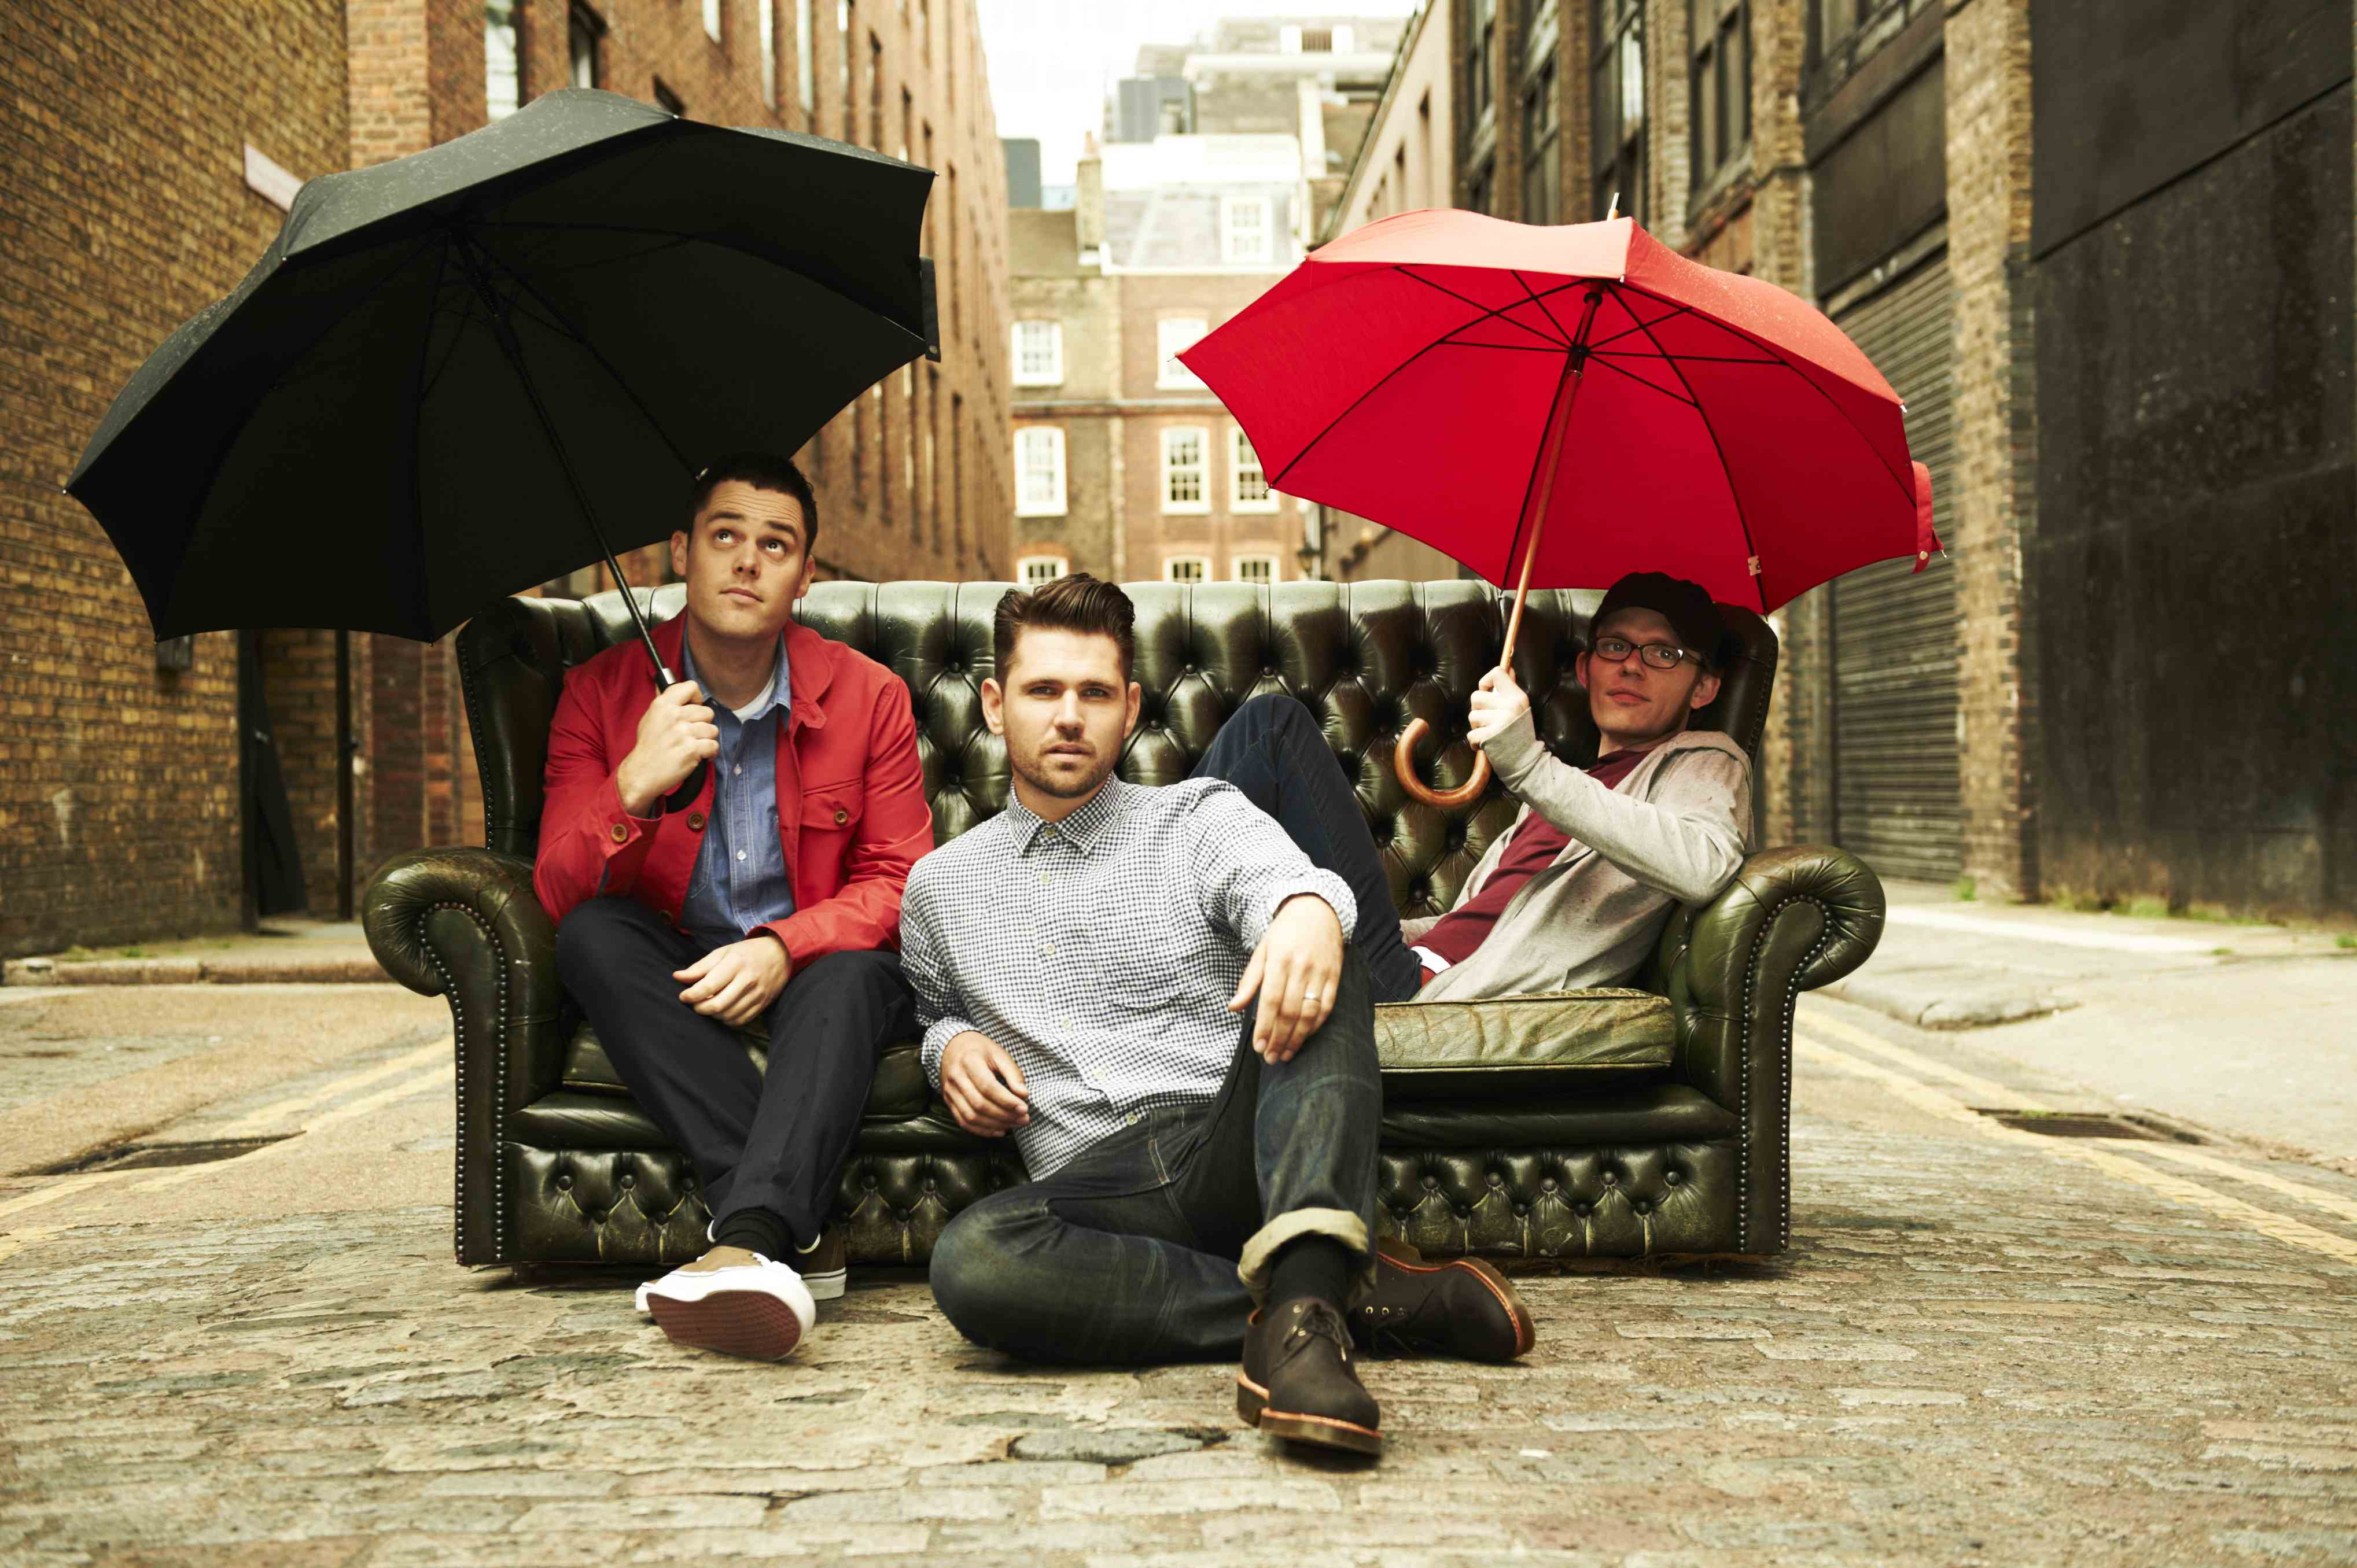 Scouting-For-Girls-Press-Shot-1-171L